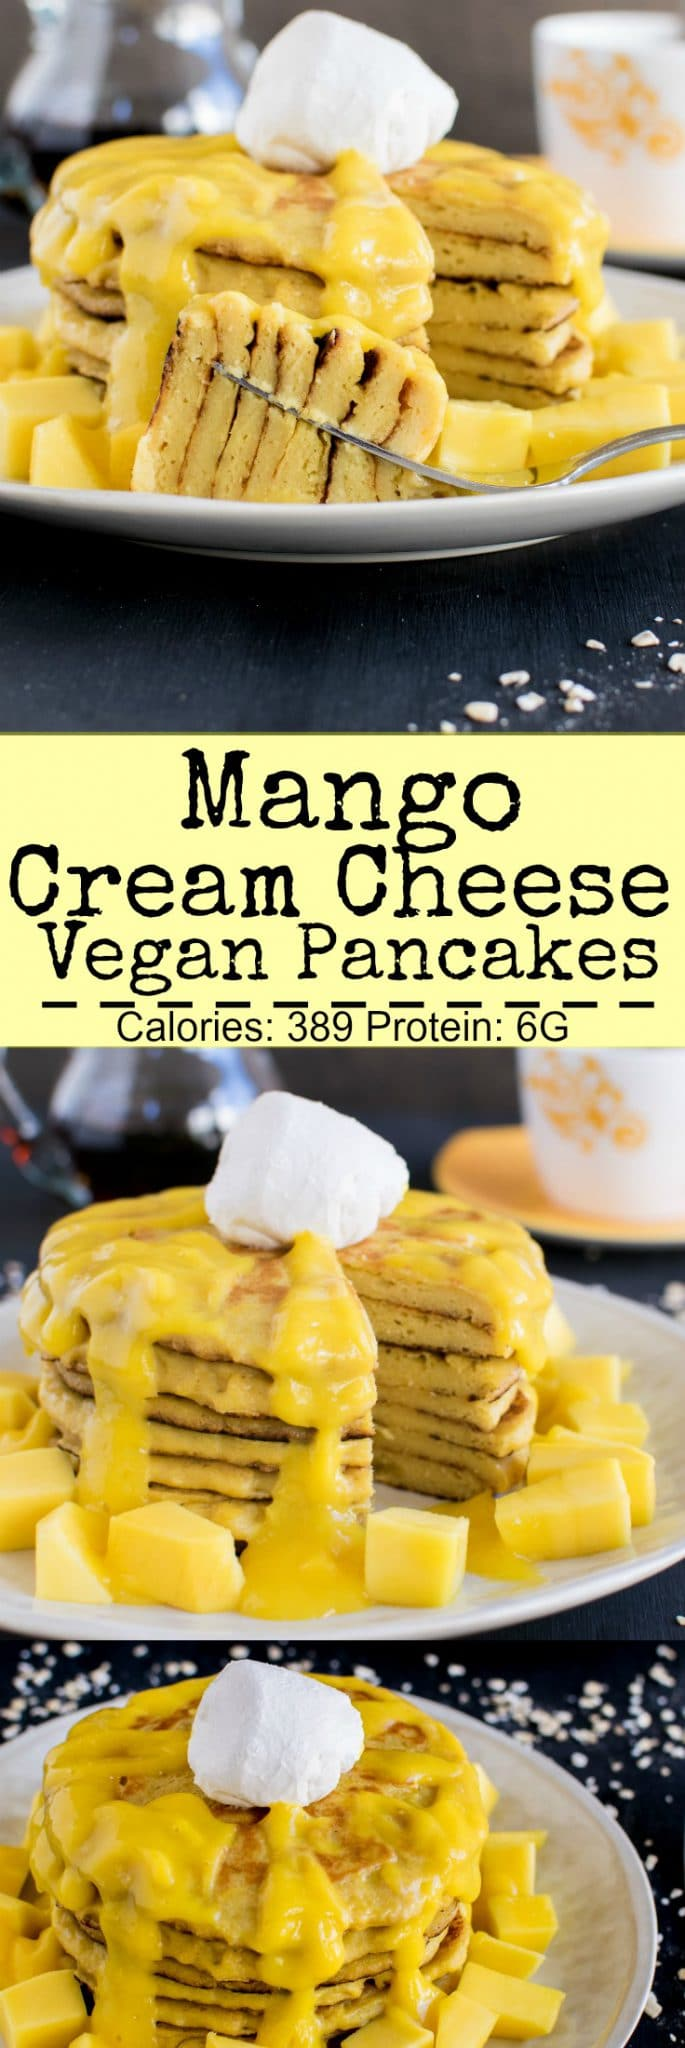 Mango Cream Cheese Vegan Pancakes with Mango Puree | when you dig into salty cream cheese along with tangy mango puree and all the to the sweet pancakes stack, it tastes exceptionally delicious | kiipfit.com